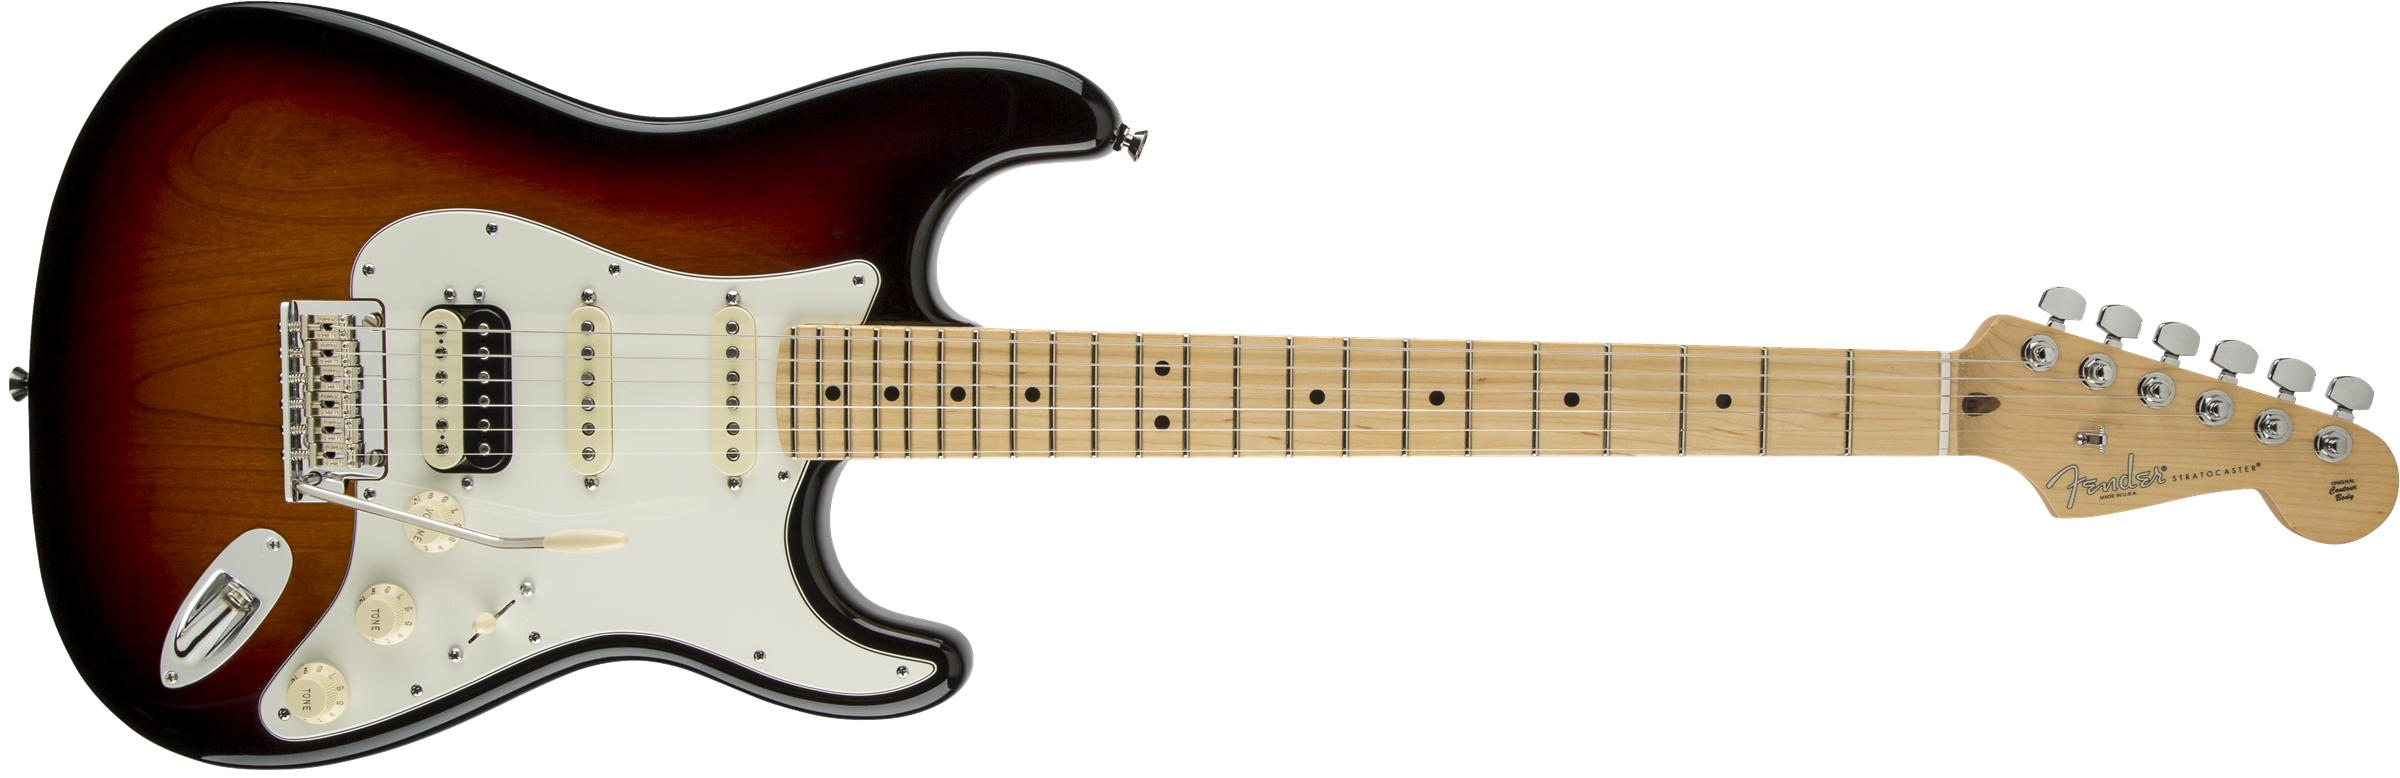 Fender American Standard Stratocaster Hss Pickups Best 2018 Pickup Wiring Diagram Deluxe Strat Electric Guitars